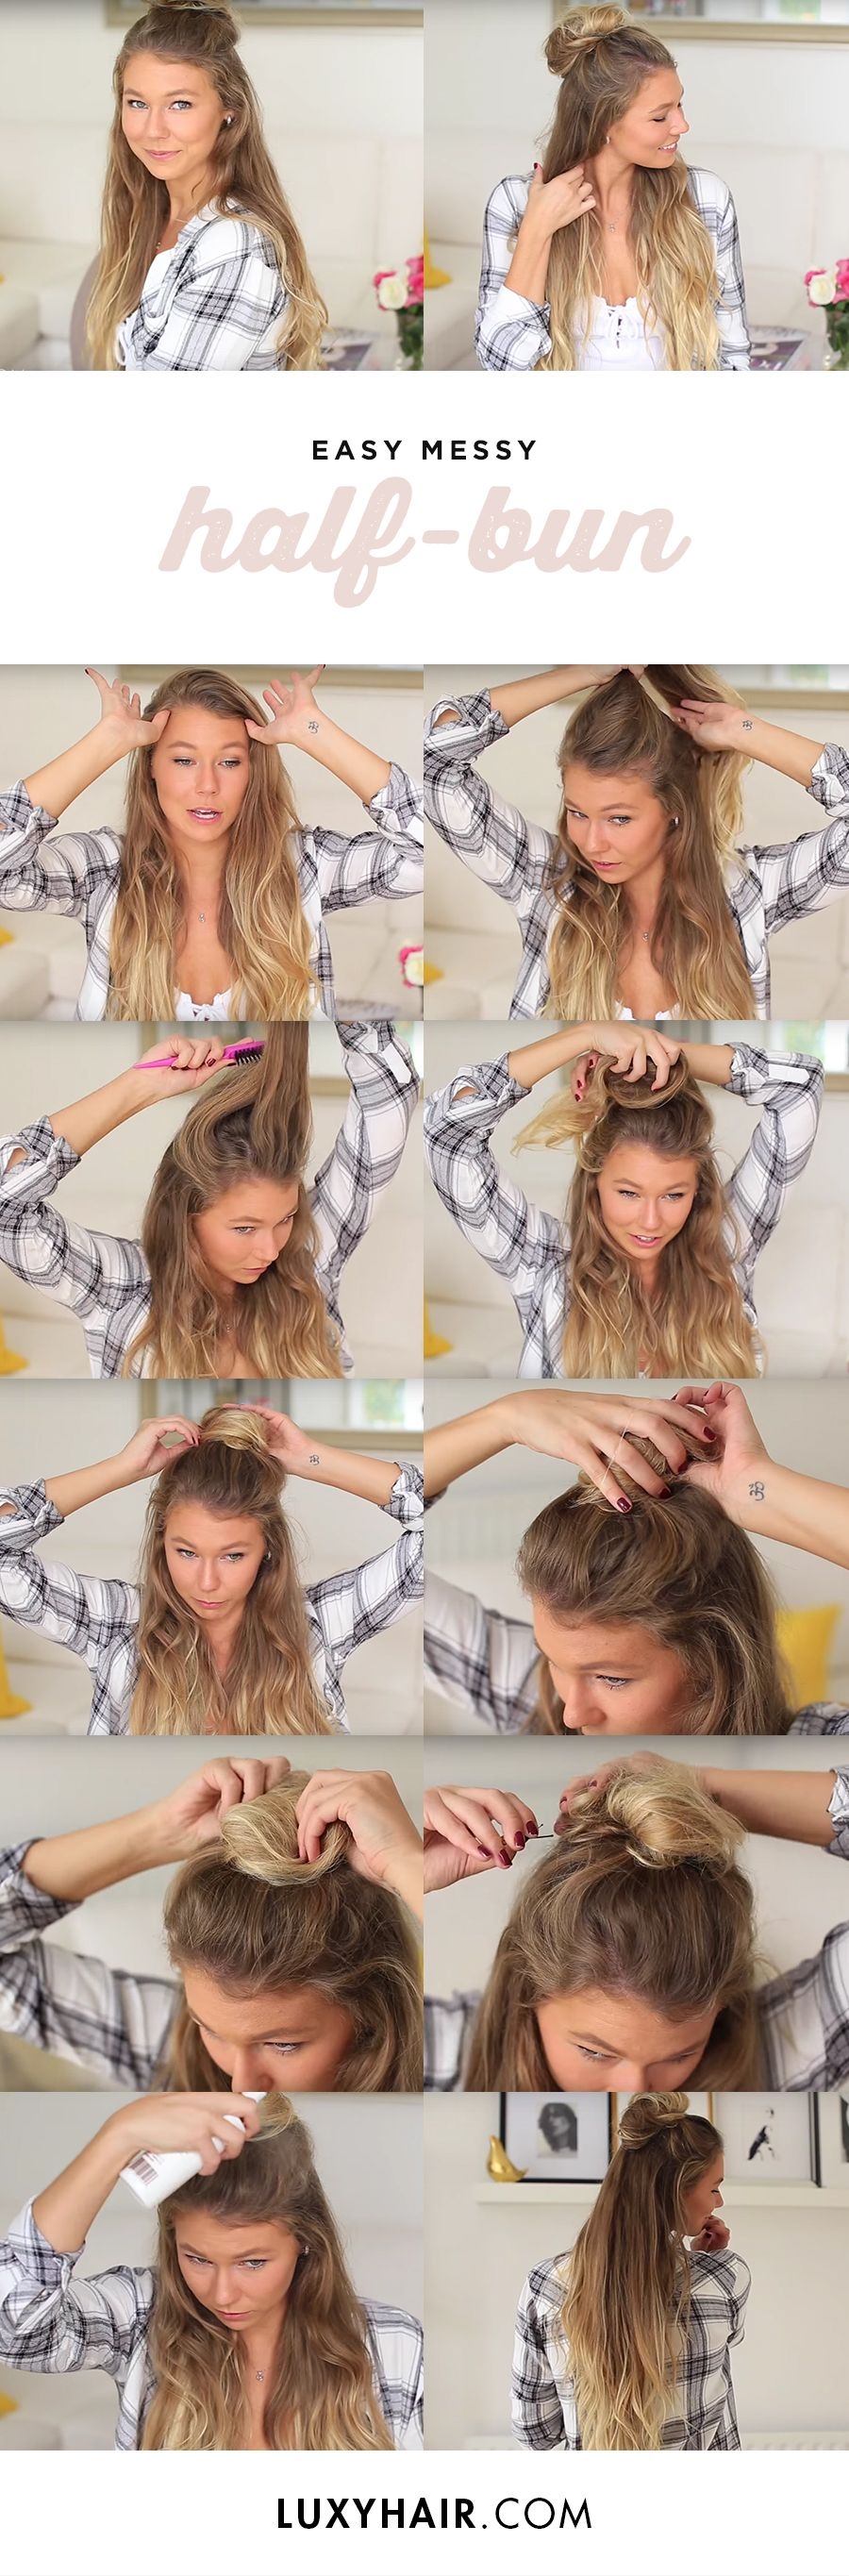 Have you tried our messy halfbun in this fun tutorial by